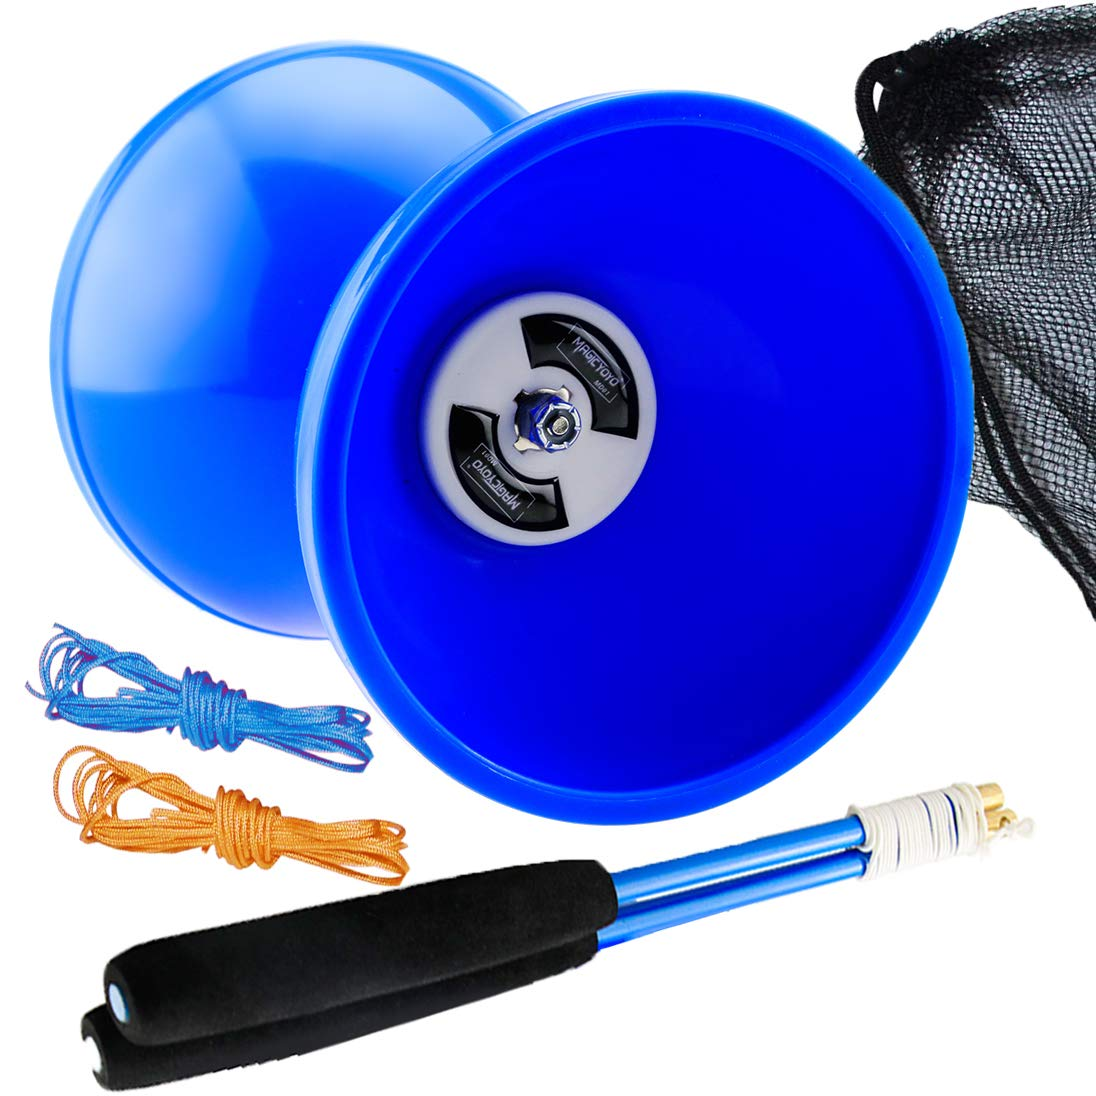 MAGICYOYO Pro Triple Bearing Medium 5'' Blue Chinese Yoyo Diabolo Toy with Carbon Sticks+1 Net Bag + 2 Extra Strings, High Performance Chinese Yoyo Diabolo Skill Toy by MAGICYOYO